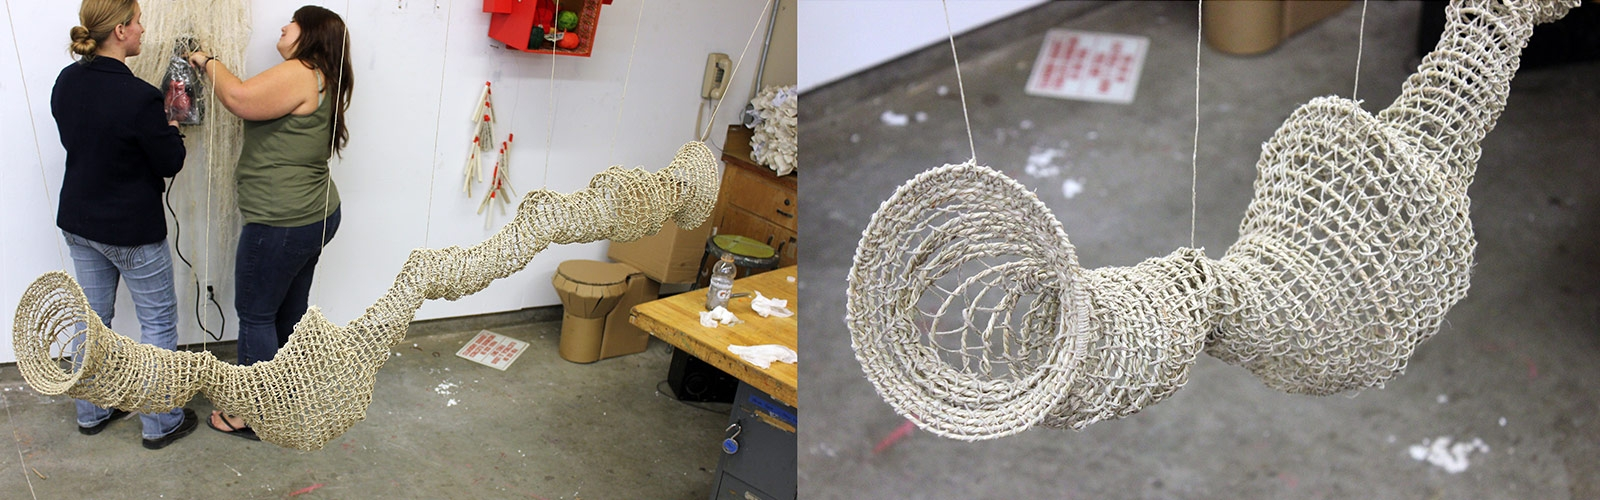 Hanging sculpture of round hoops woven with rope